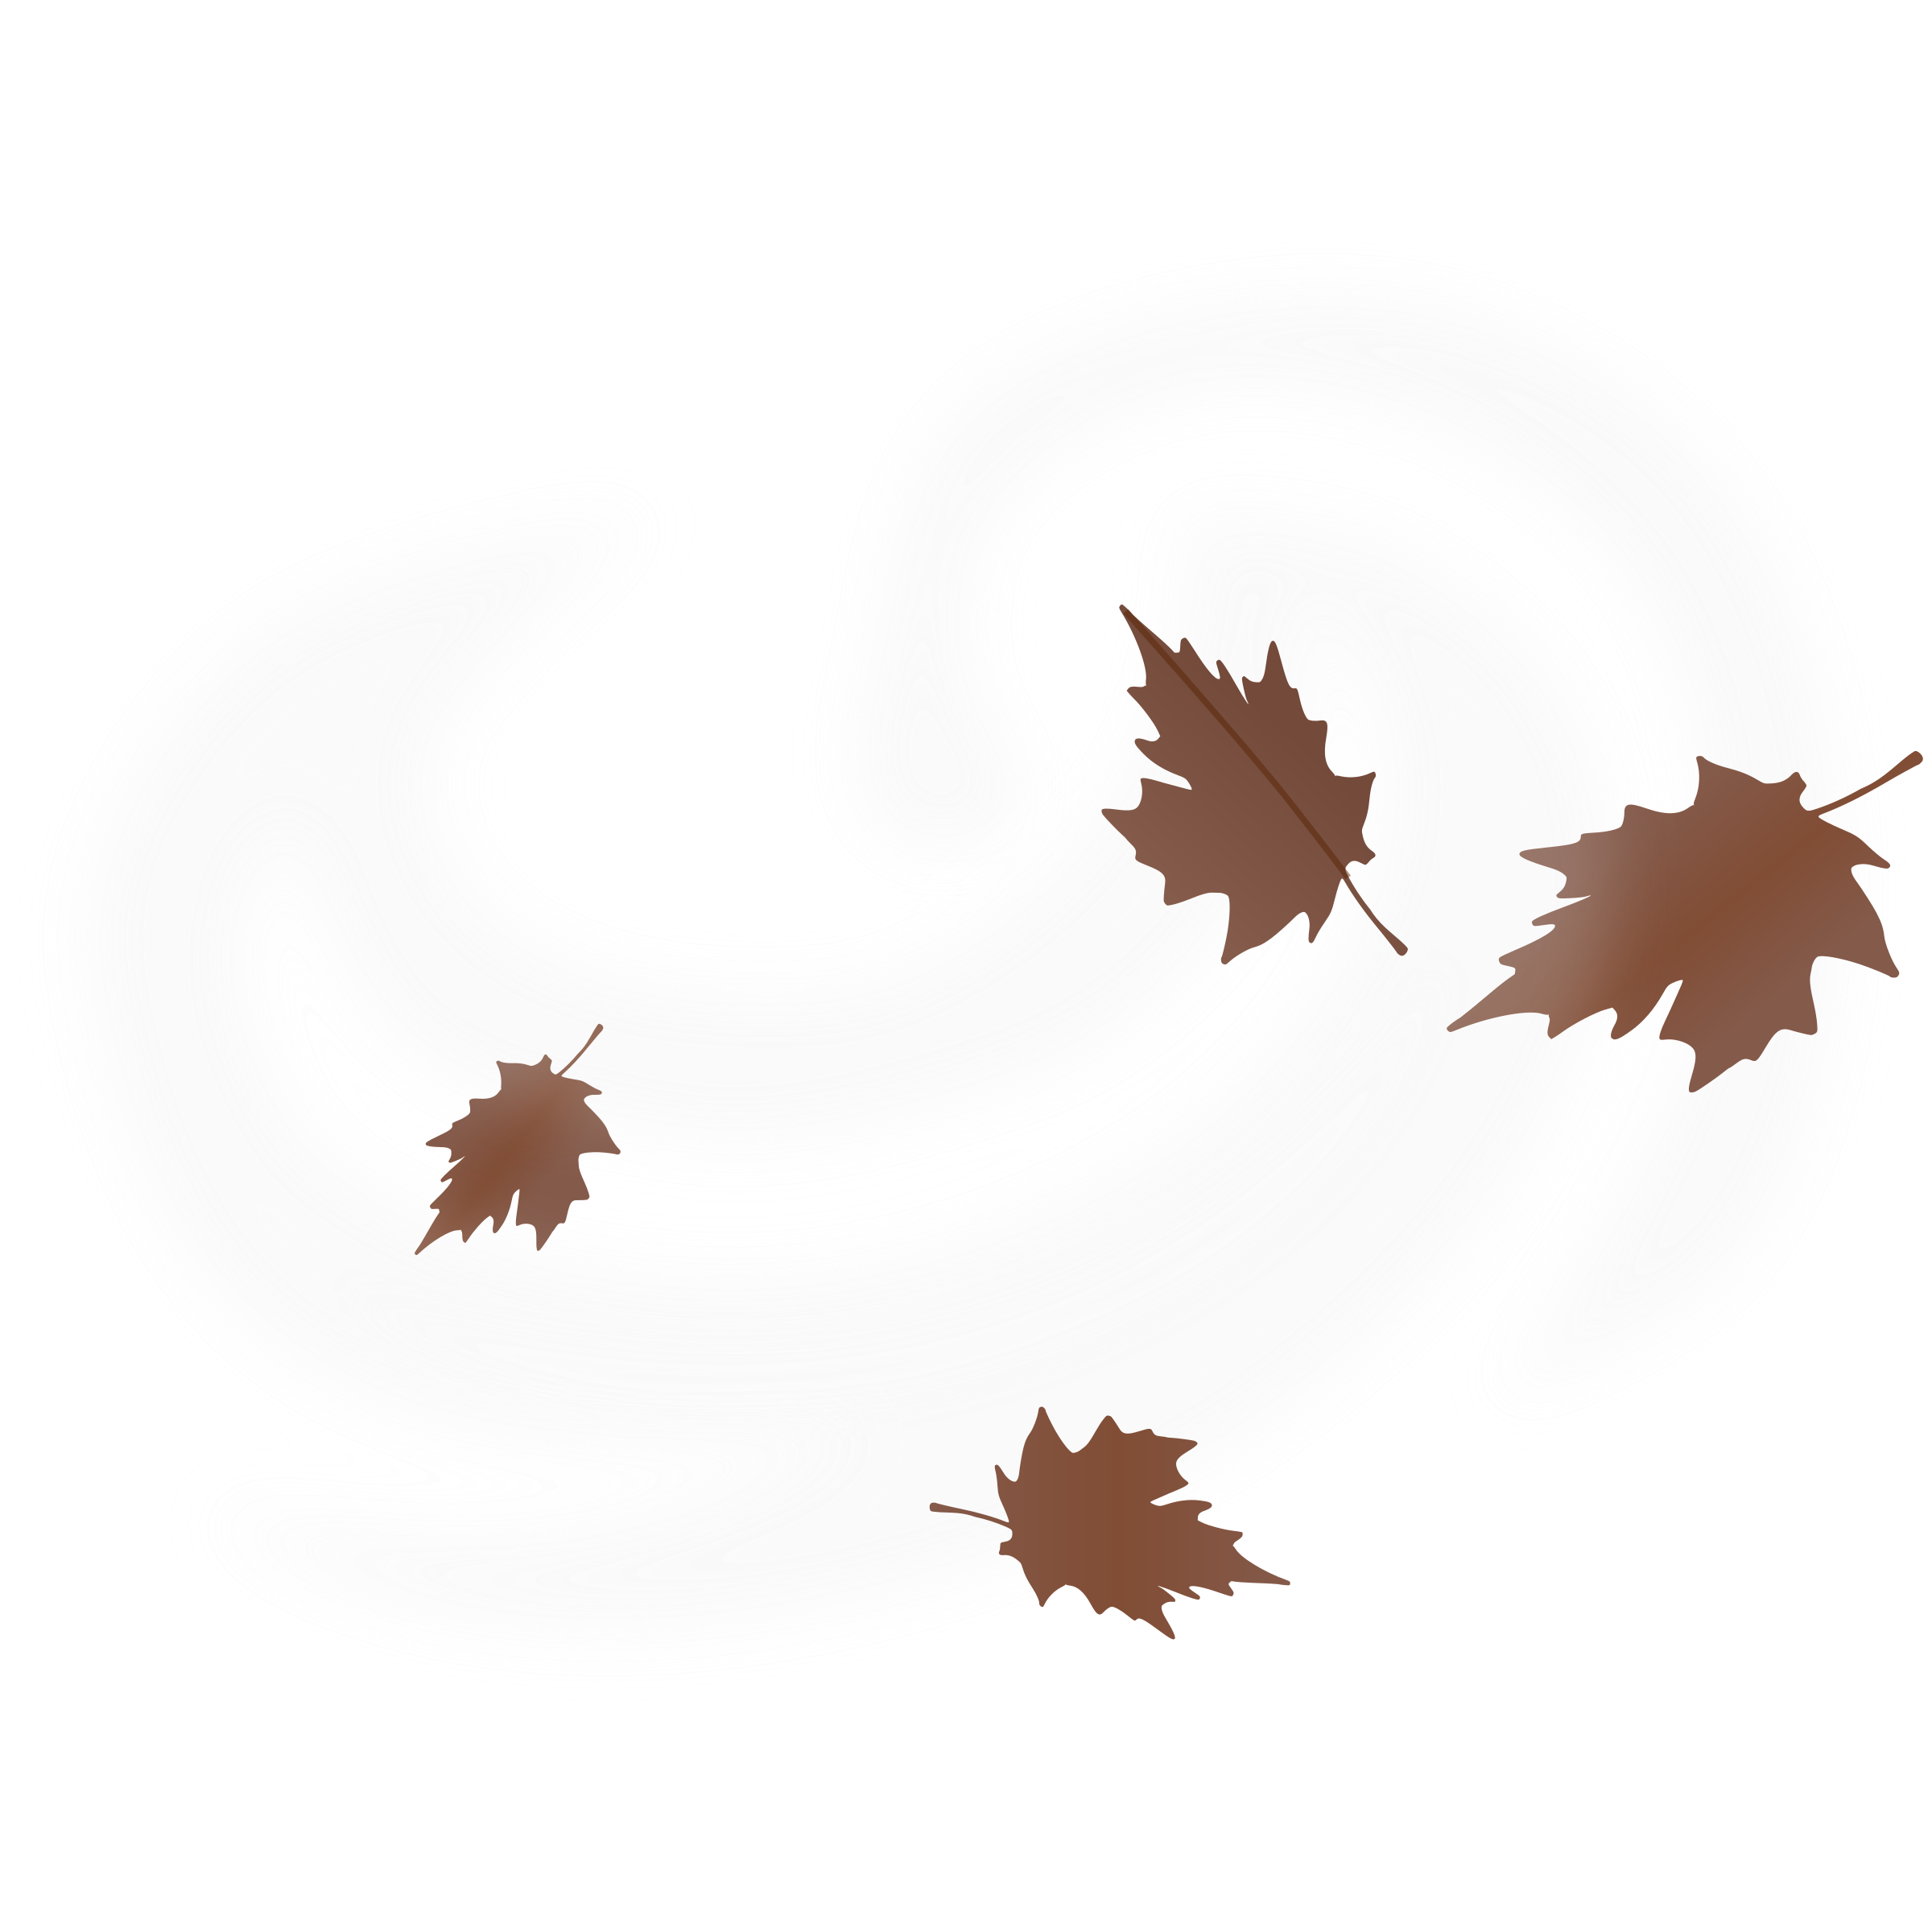 weather icon - windy by gnokii